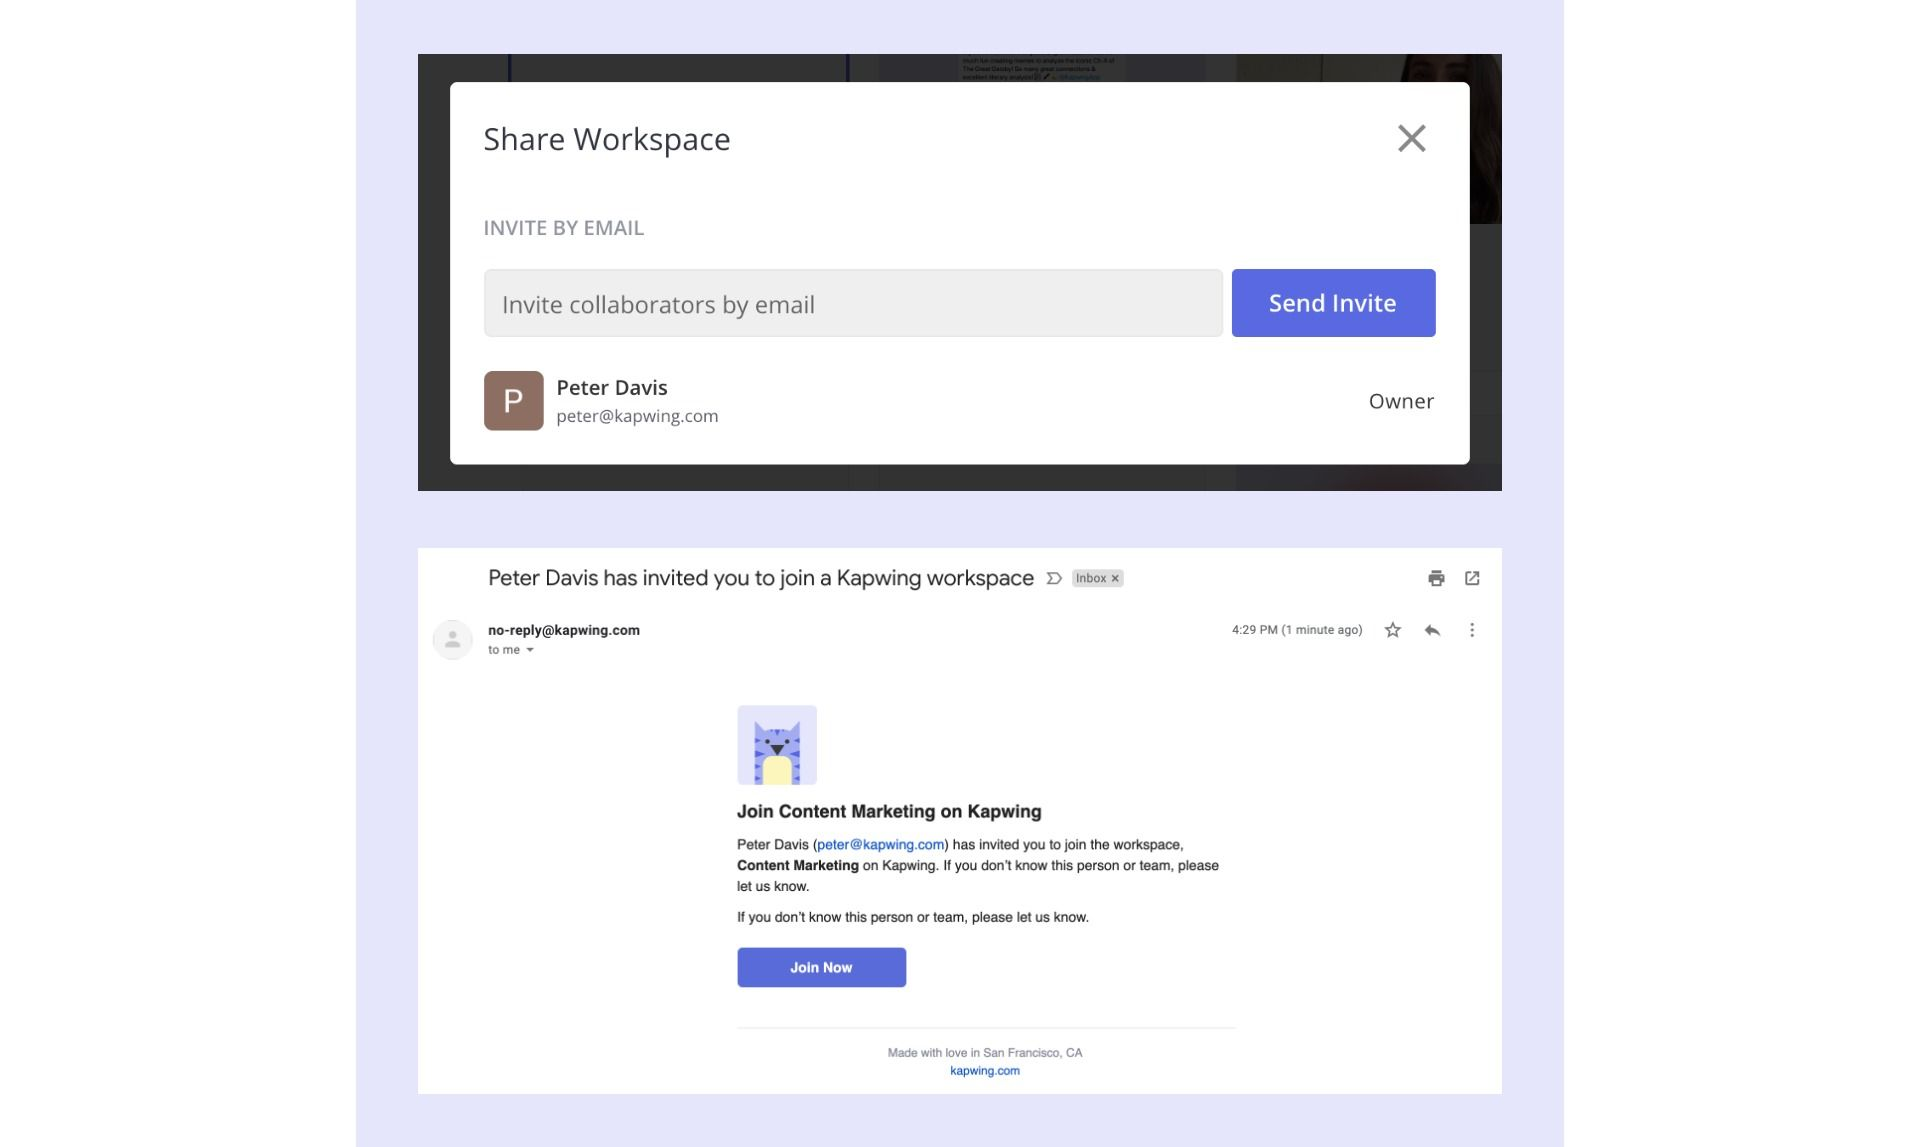 Screenshots demonstrating how to send and accept shared Workspace invitations.